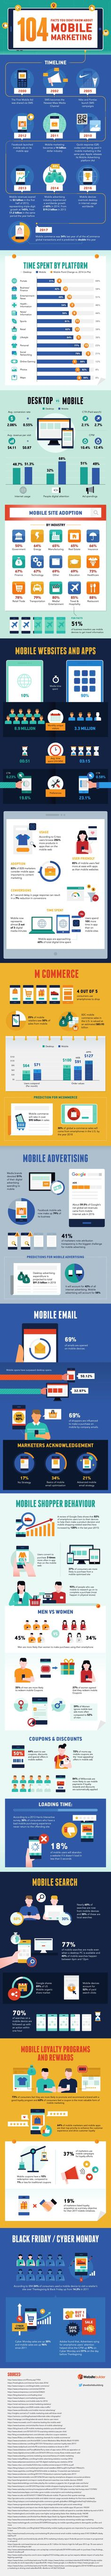 104 Facts You Don't Know About Mobile Marketing - #infographic